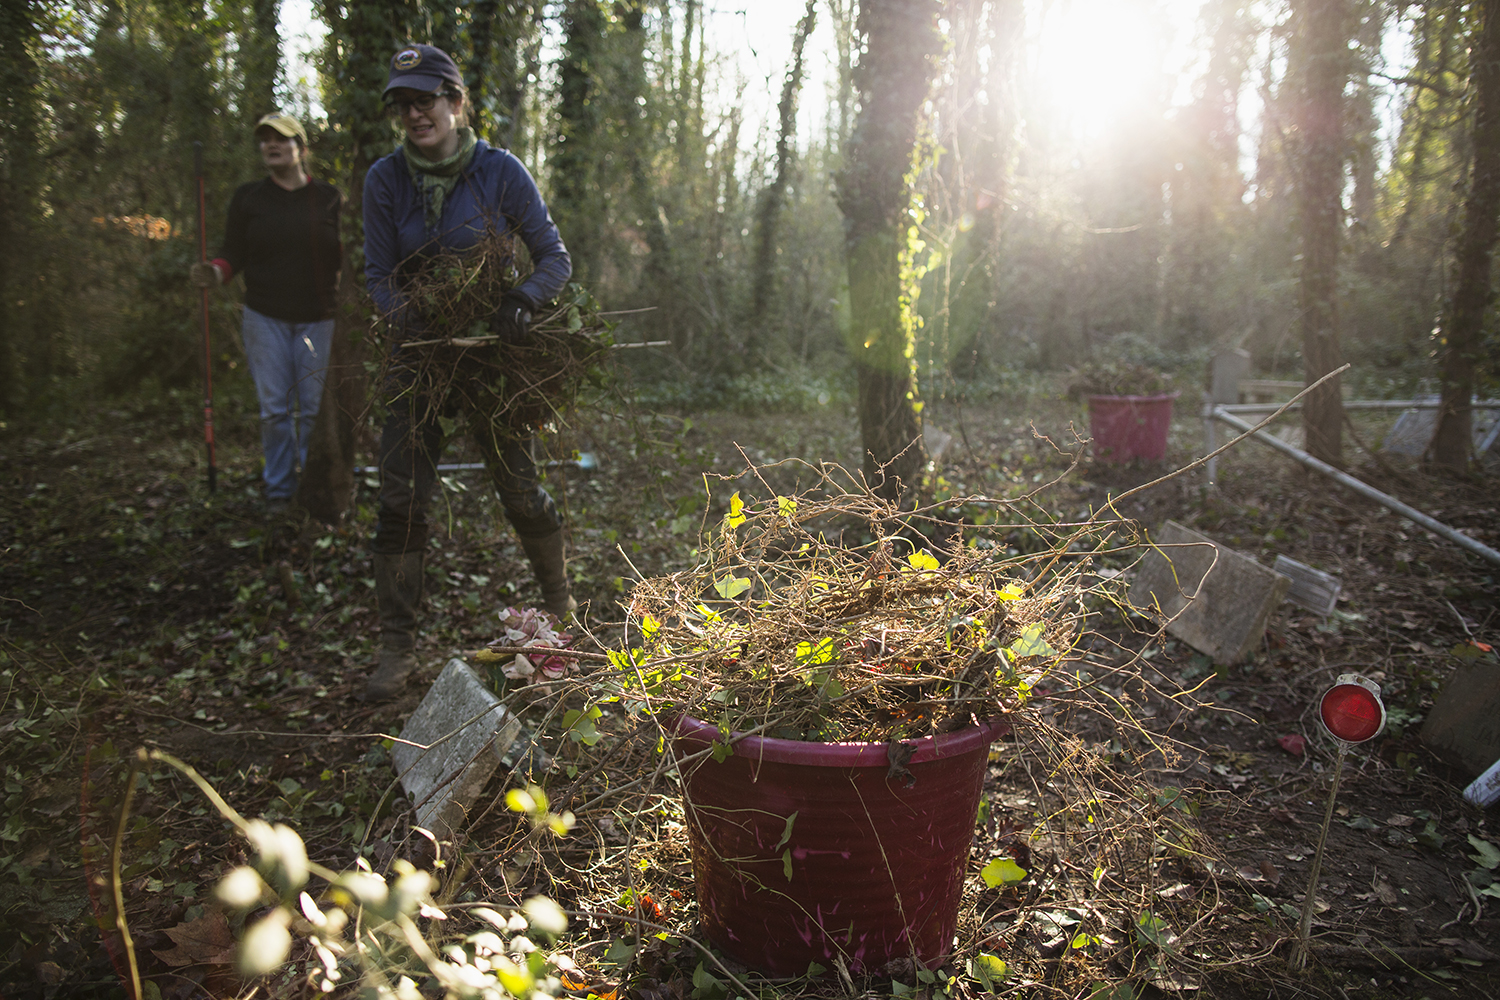 Tail end of East End Cemetery work day, January 2015.©brianpalmer.photos 2015